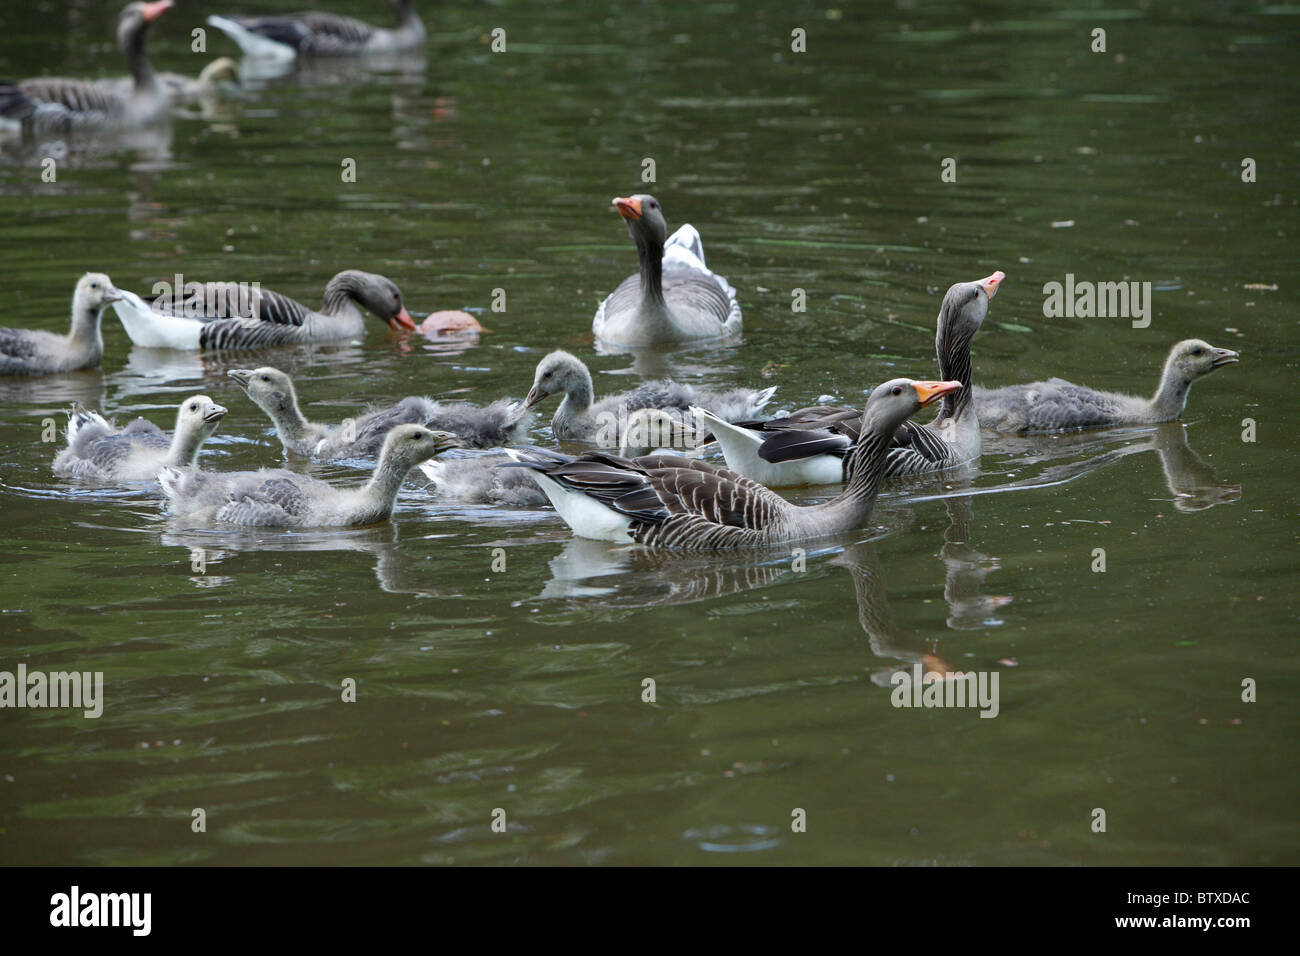 Greylag Goose (Anser anser), parent birds with goslings swimming on lake, Germany - Stock Image